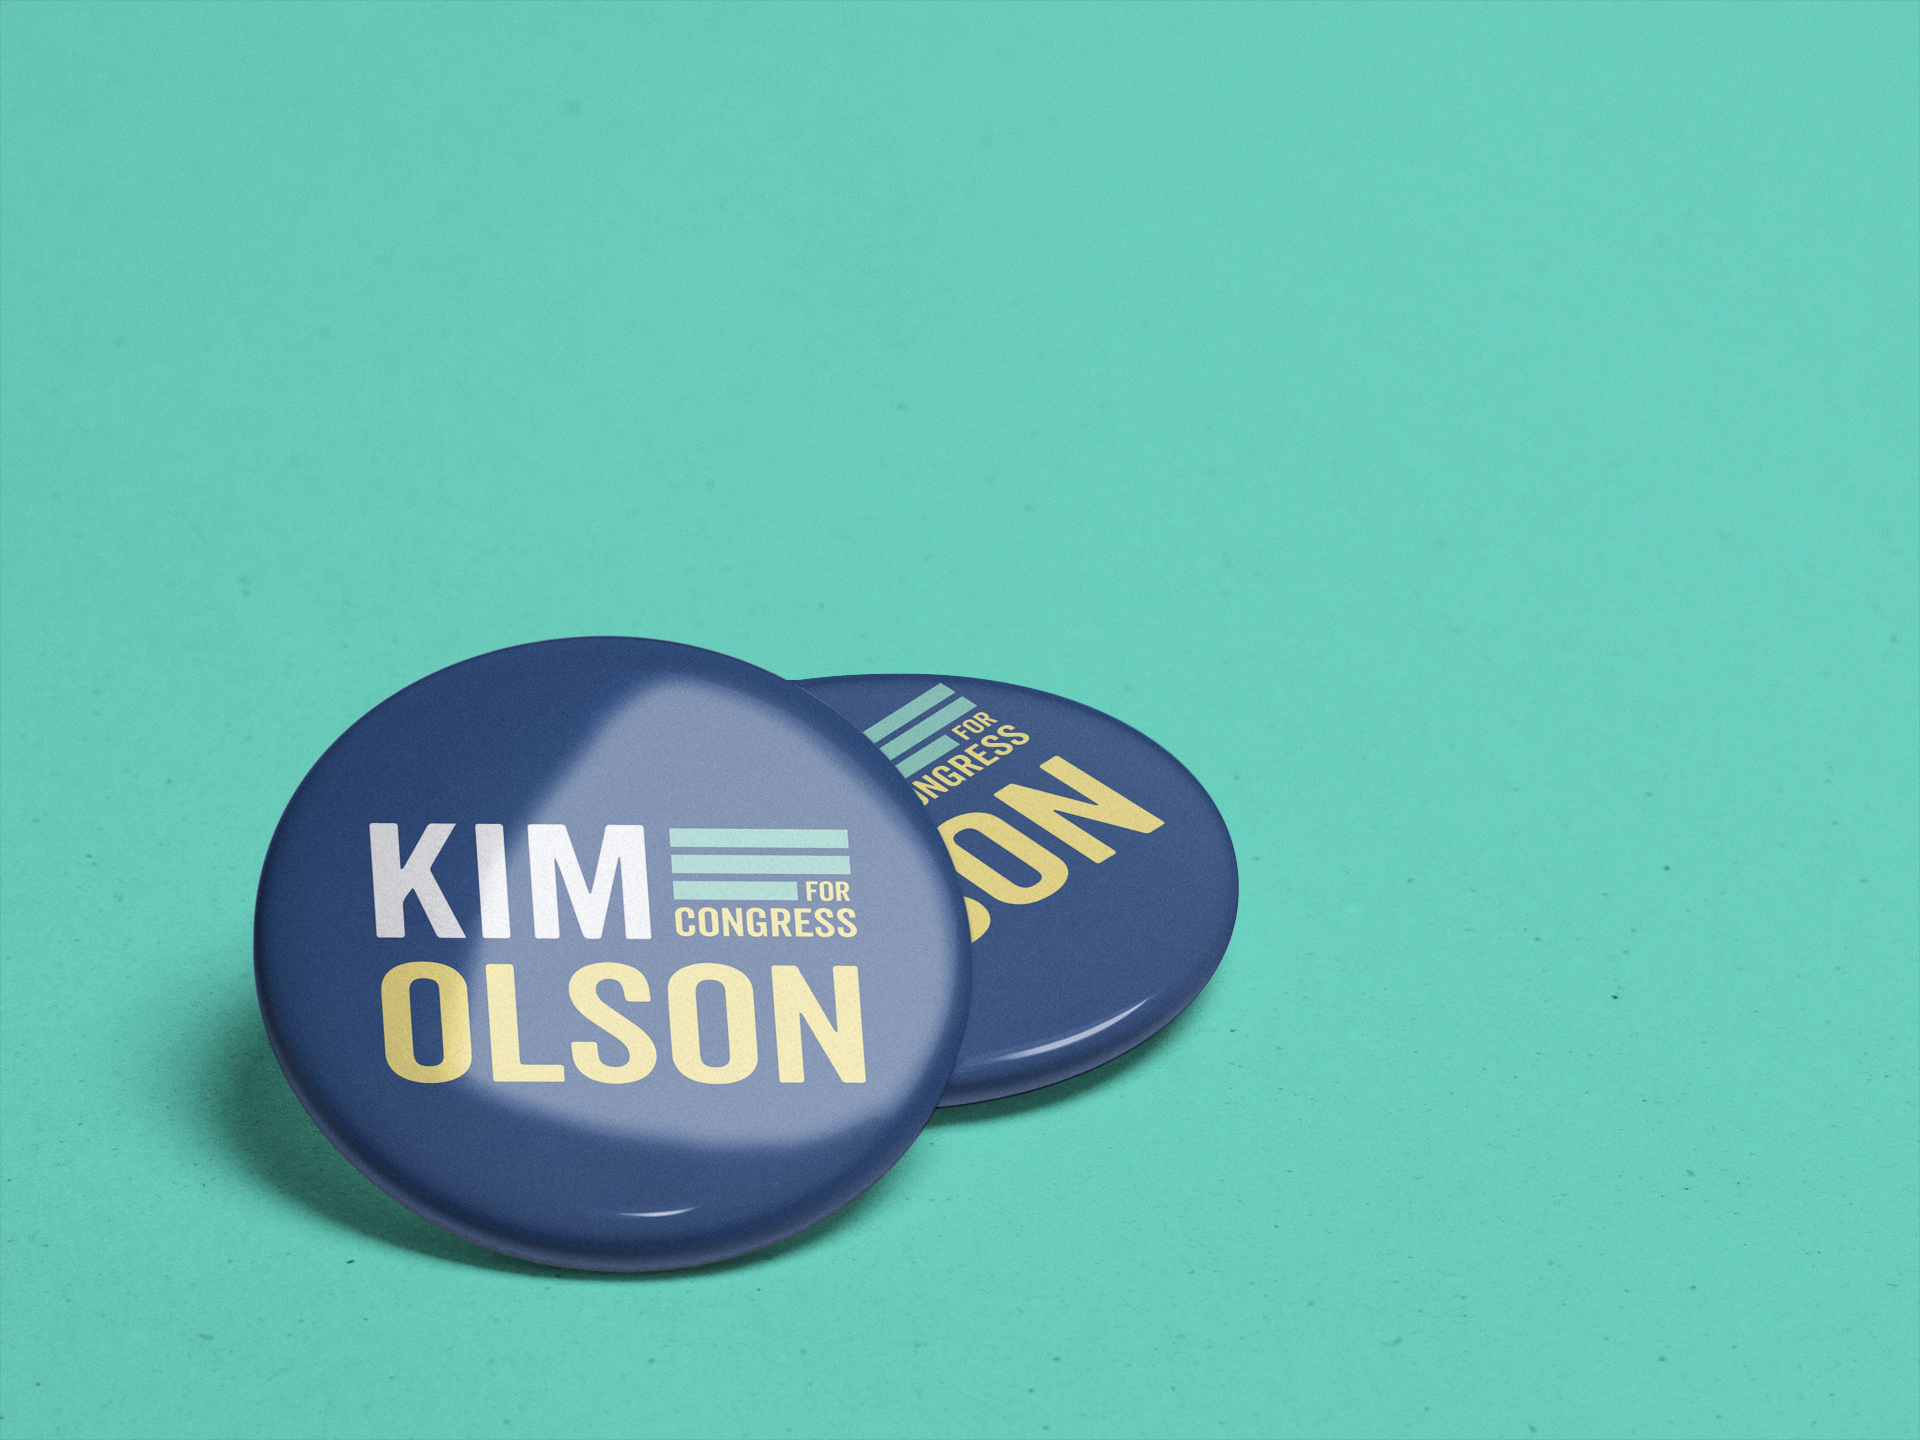 Kim olson branding - I was contracted to do logo and branding update for Kim Olson's bid for TX-24 Congress